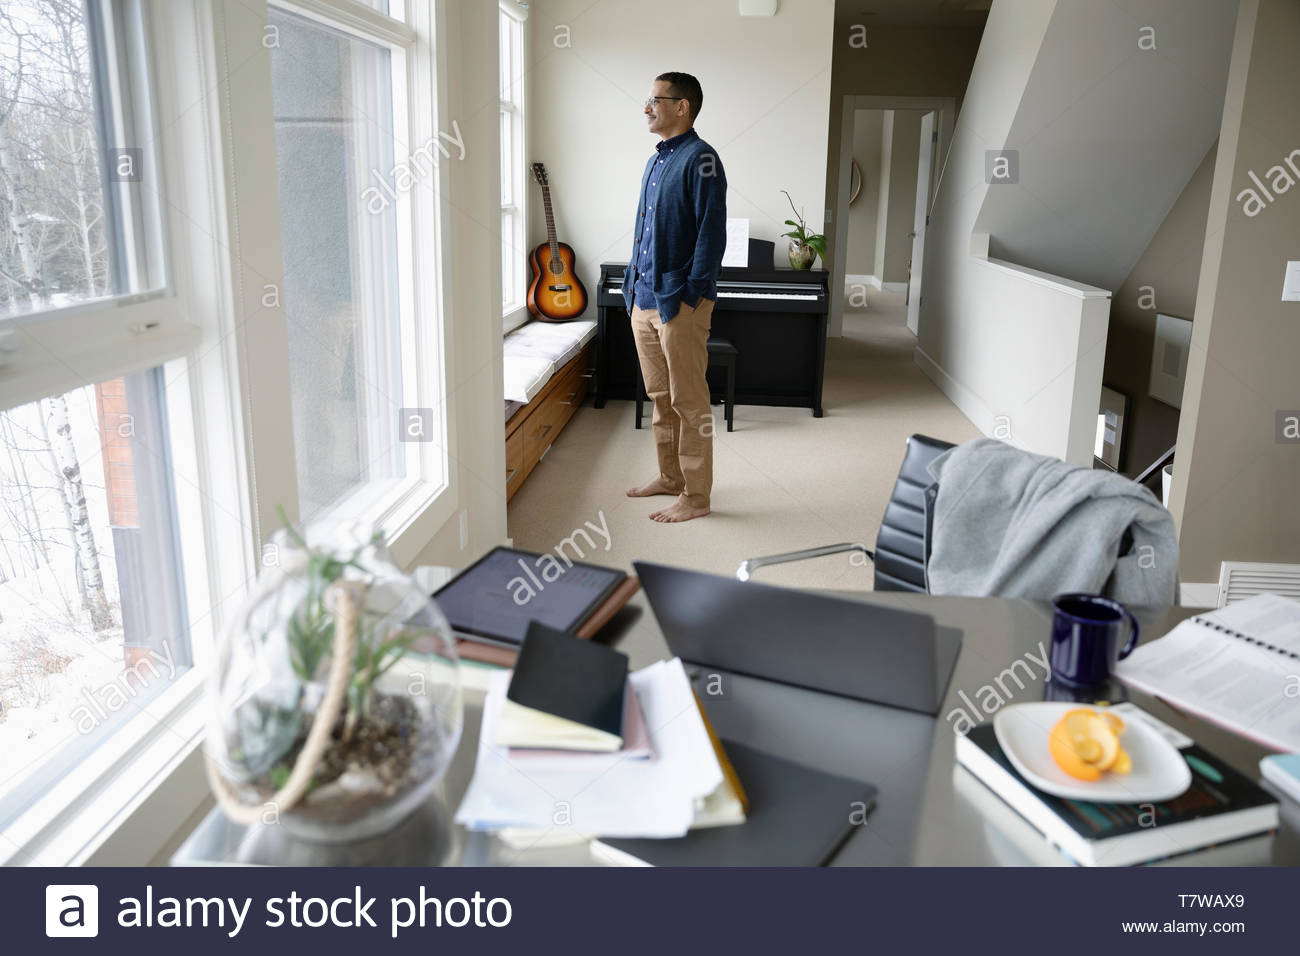 Thoughtful man taking a break from working at home, looking out window - Stock Image